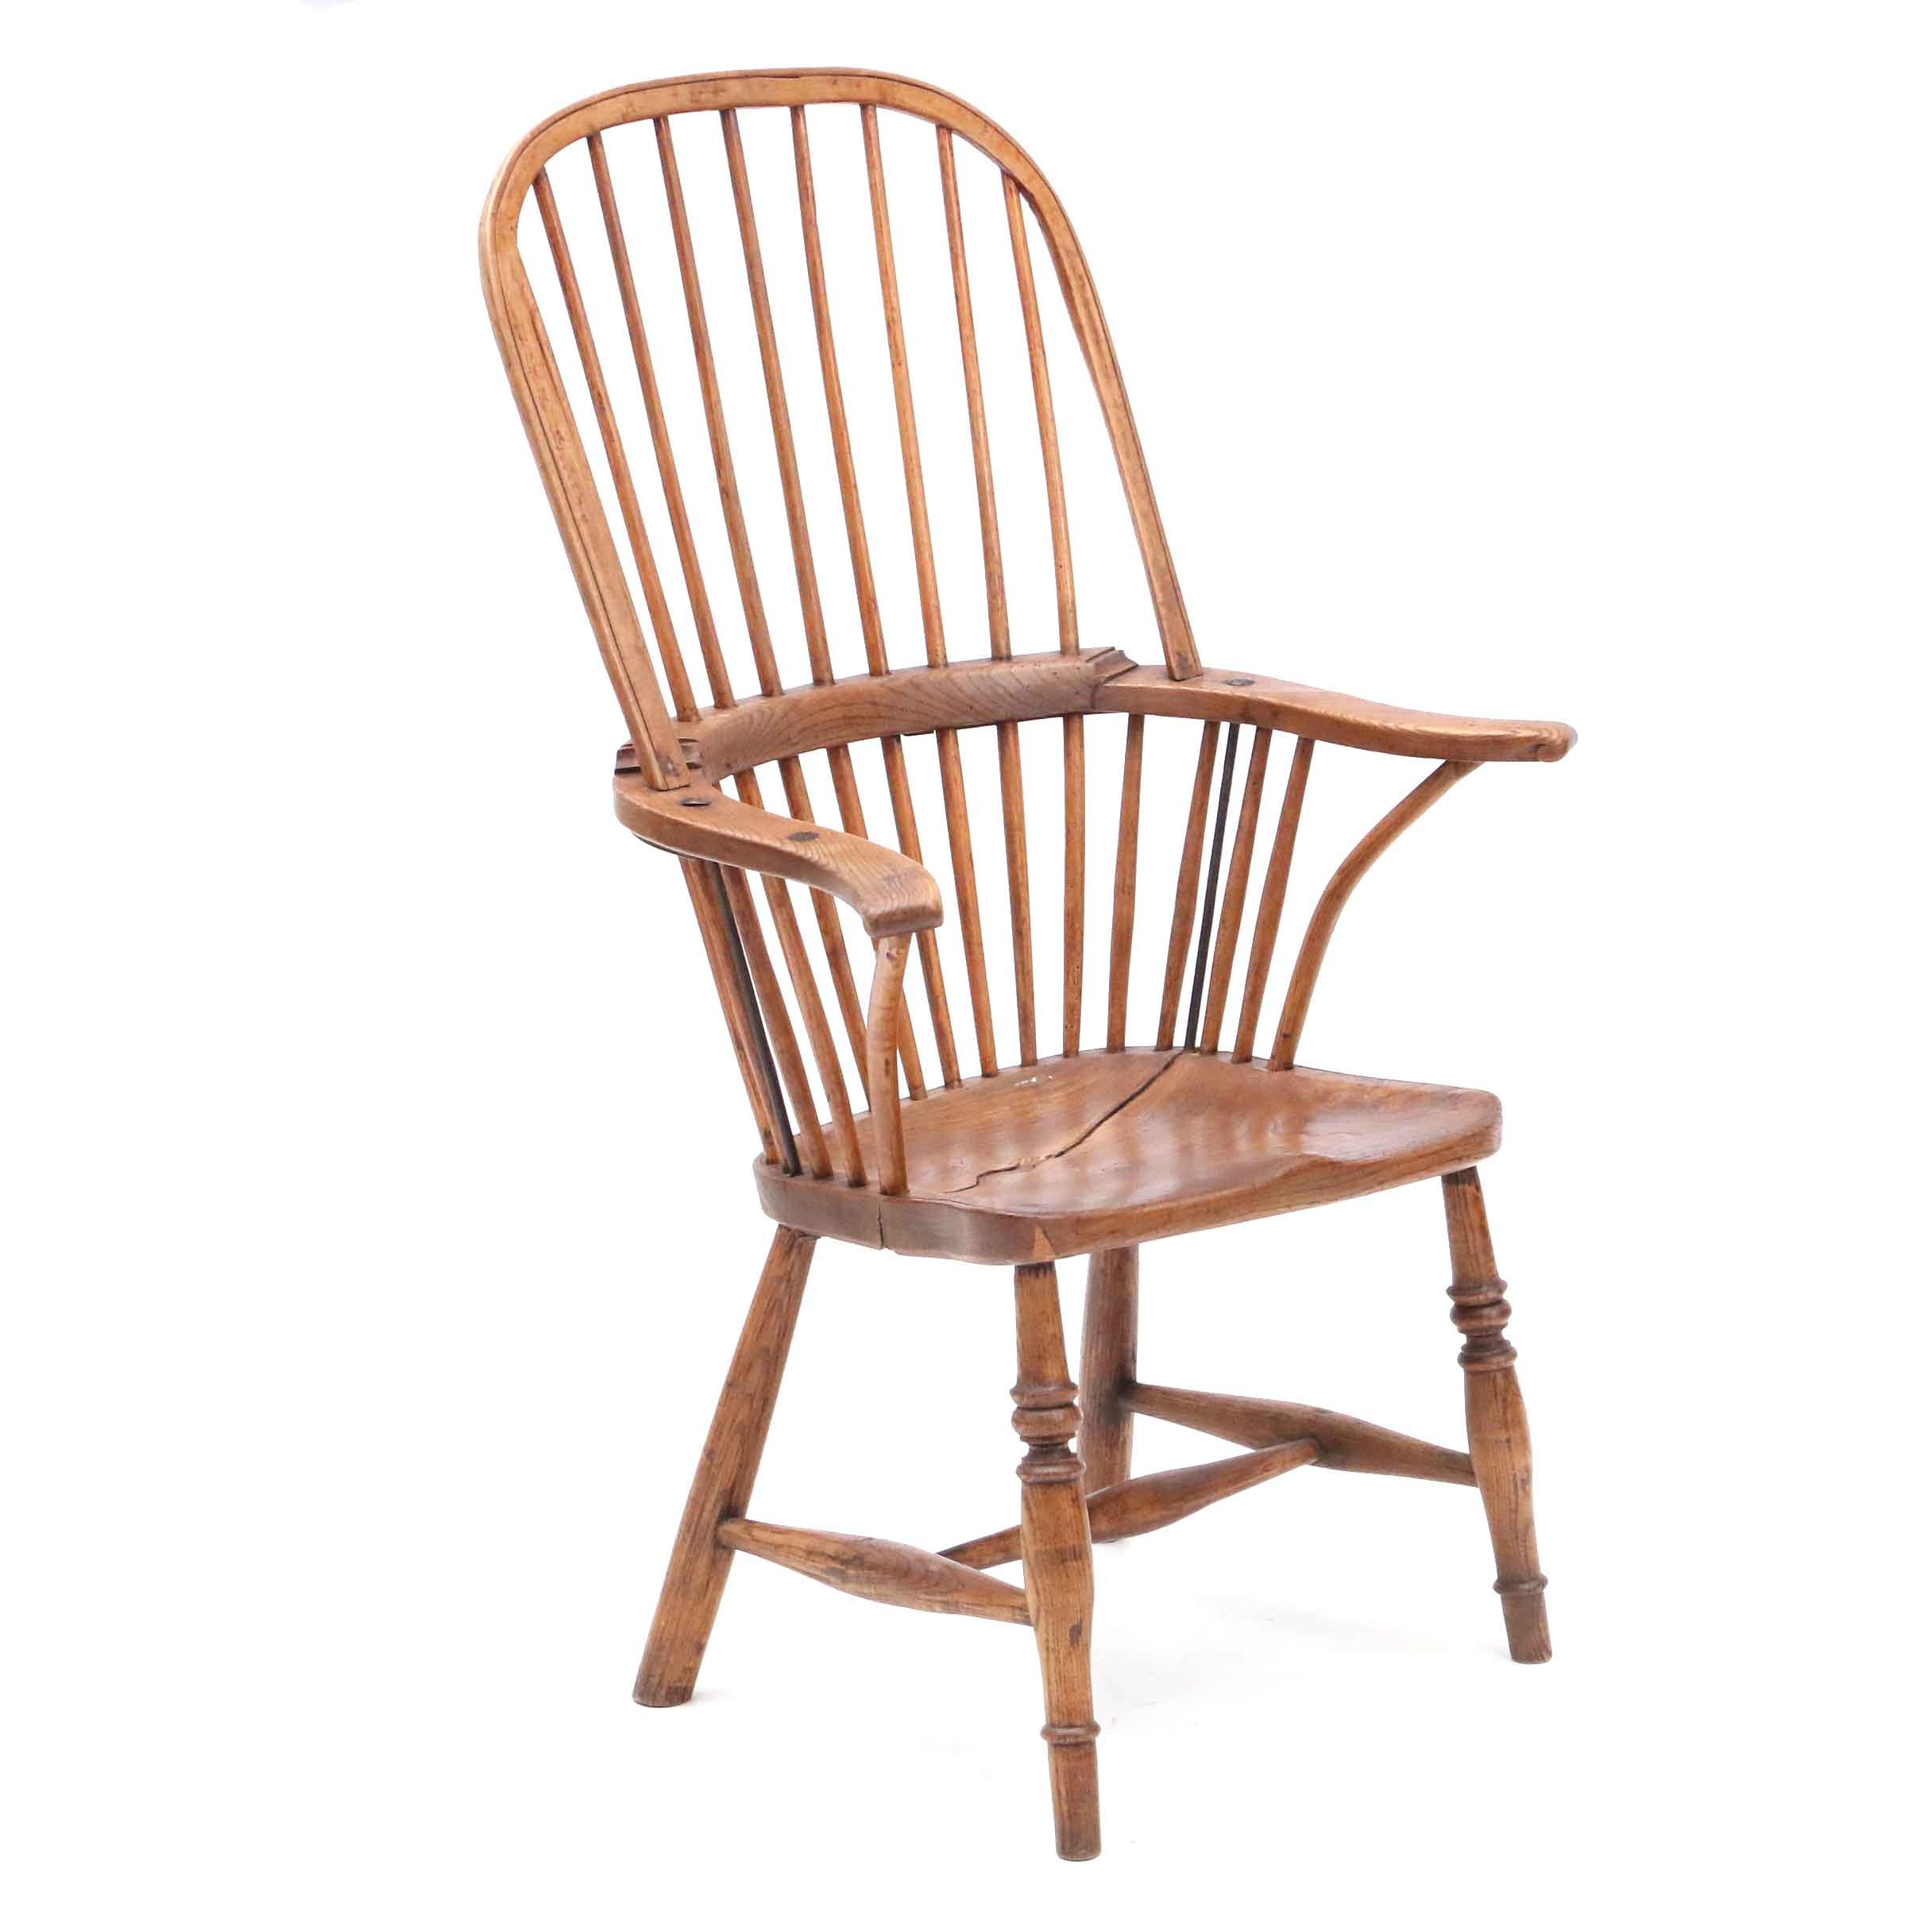 Antique Windsor Style Arm Chair